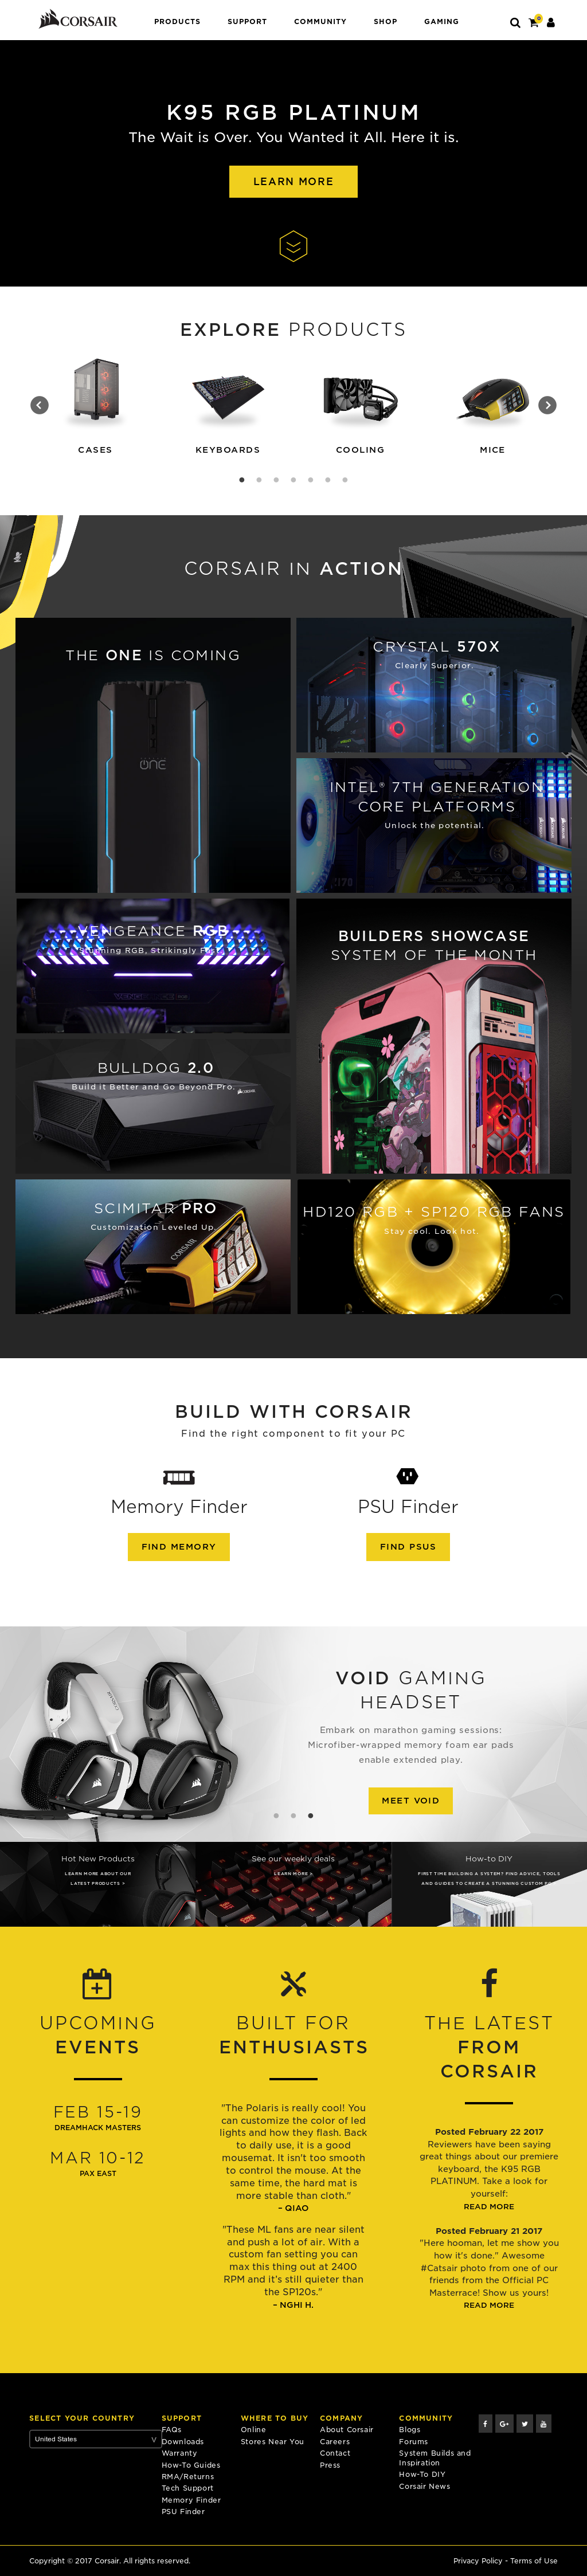 Corsair Competitors, Revenue and Employees - Owler Company Profile